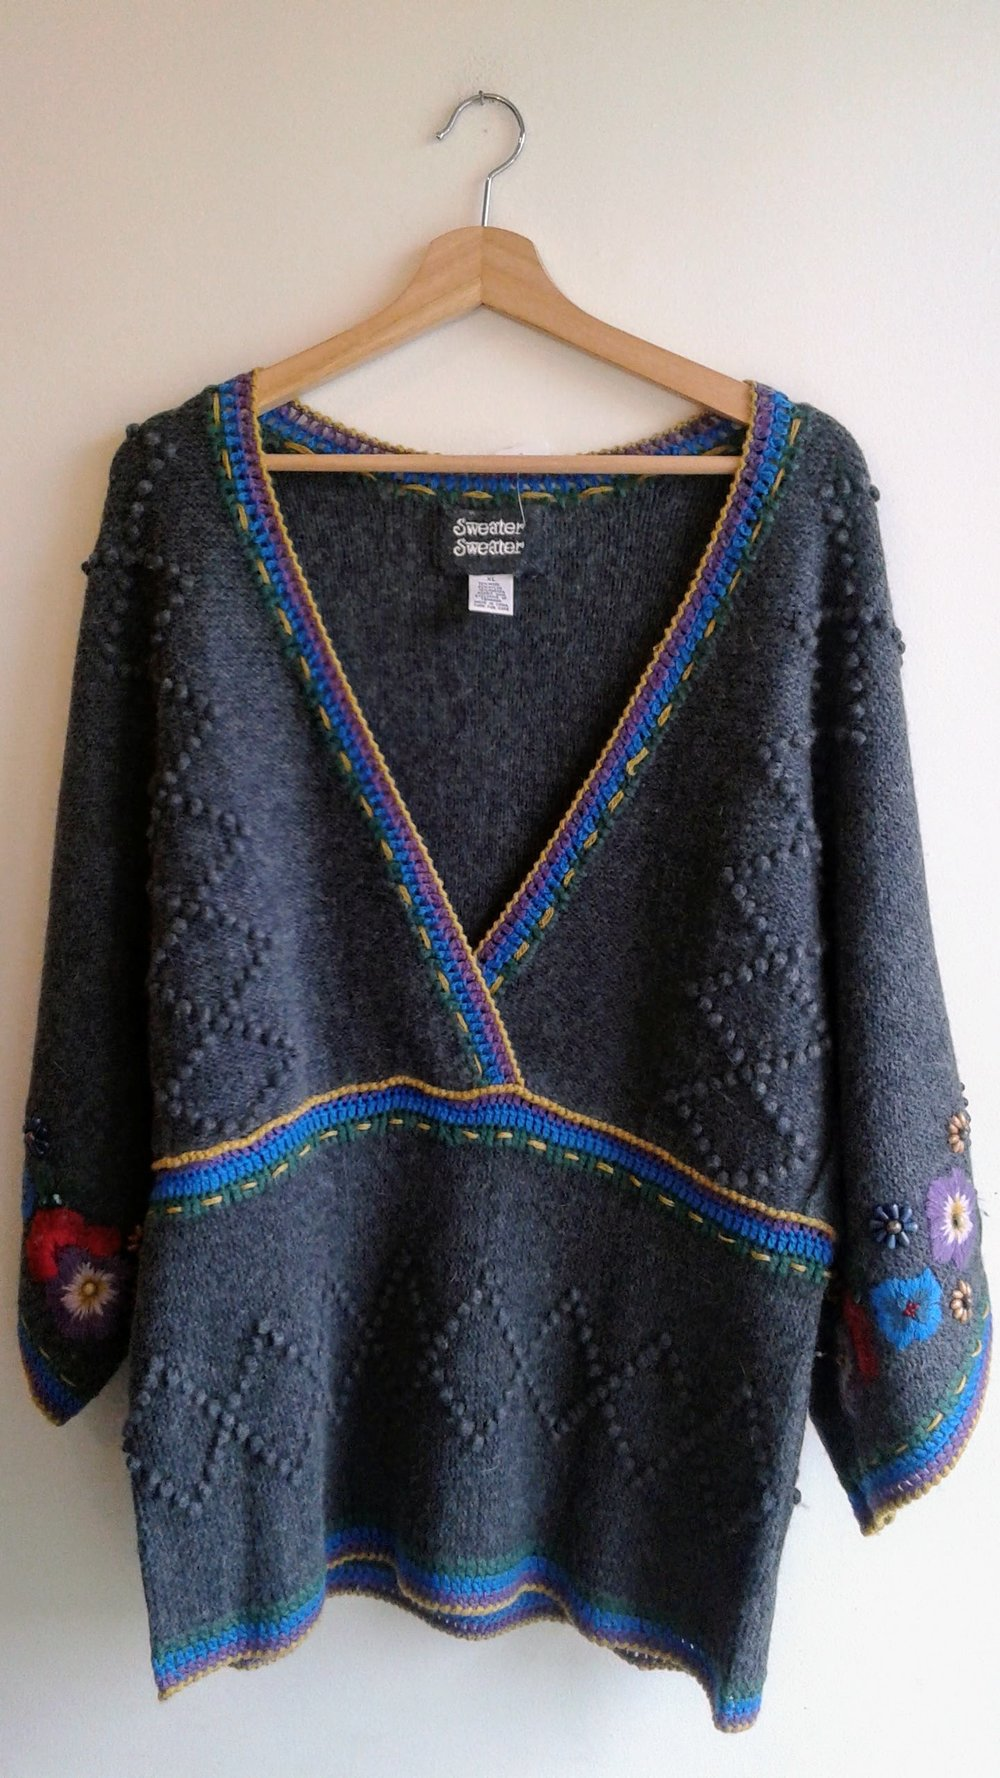 Sweater Sweater sweater; Size XL, $38